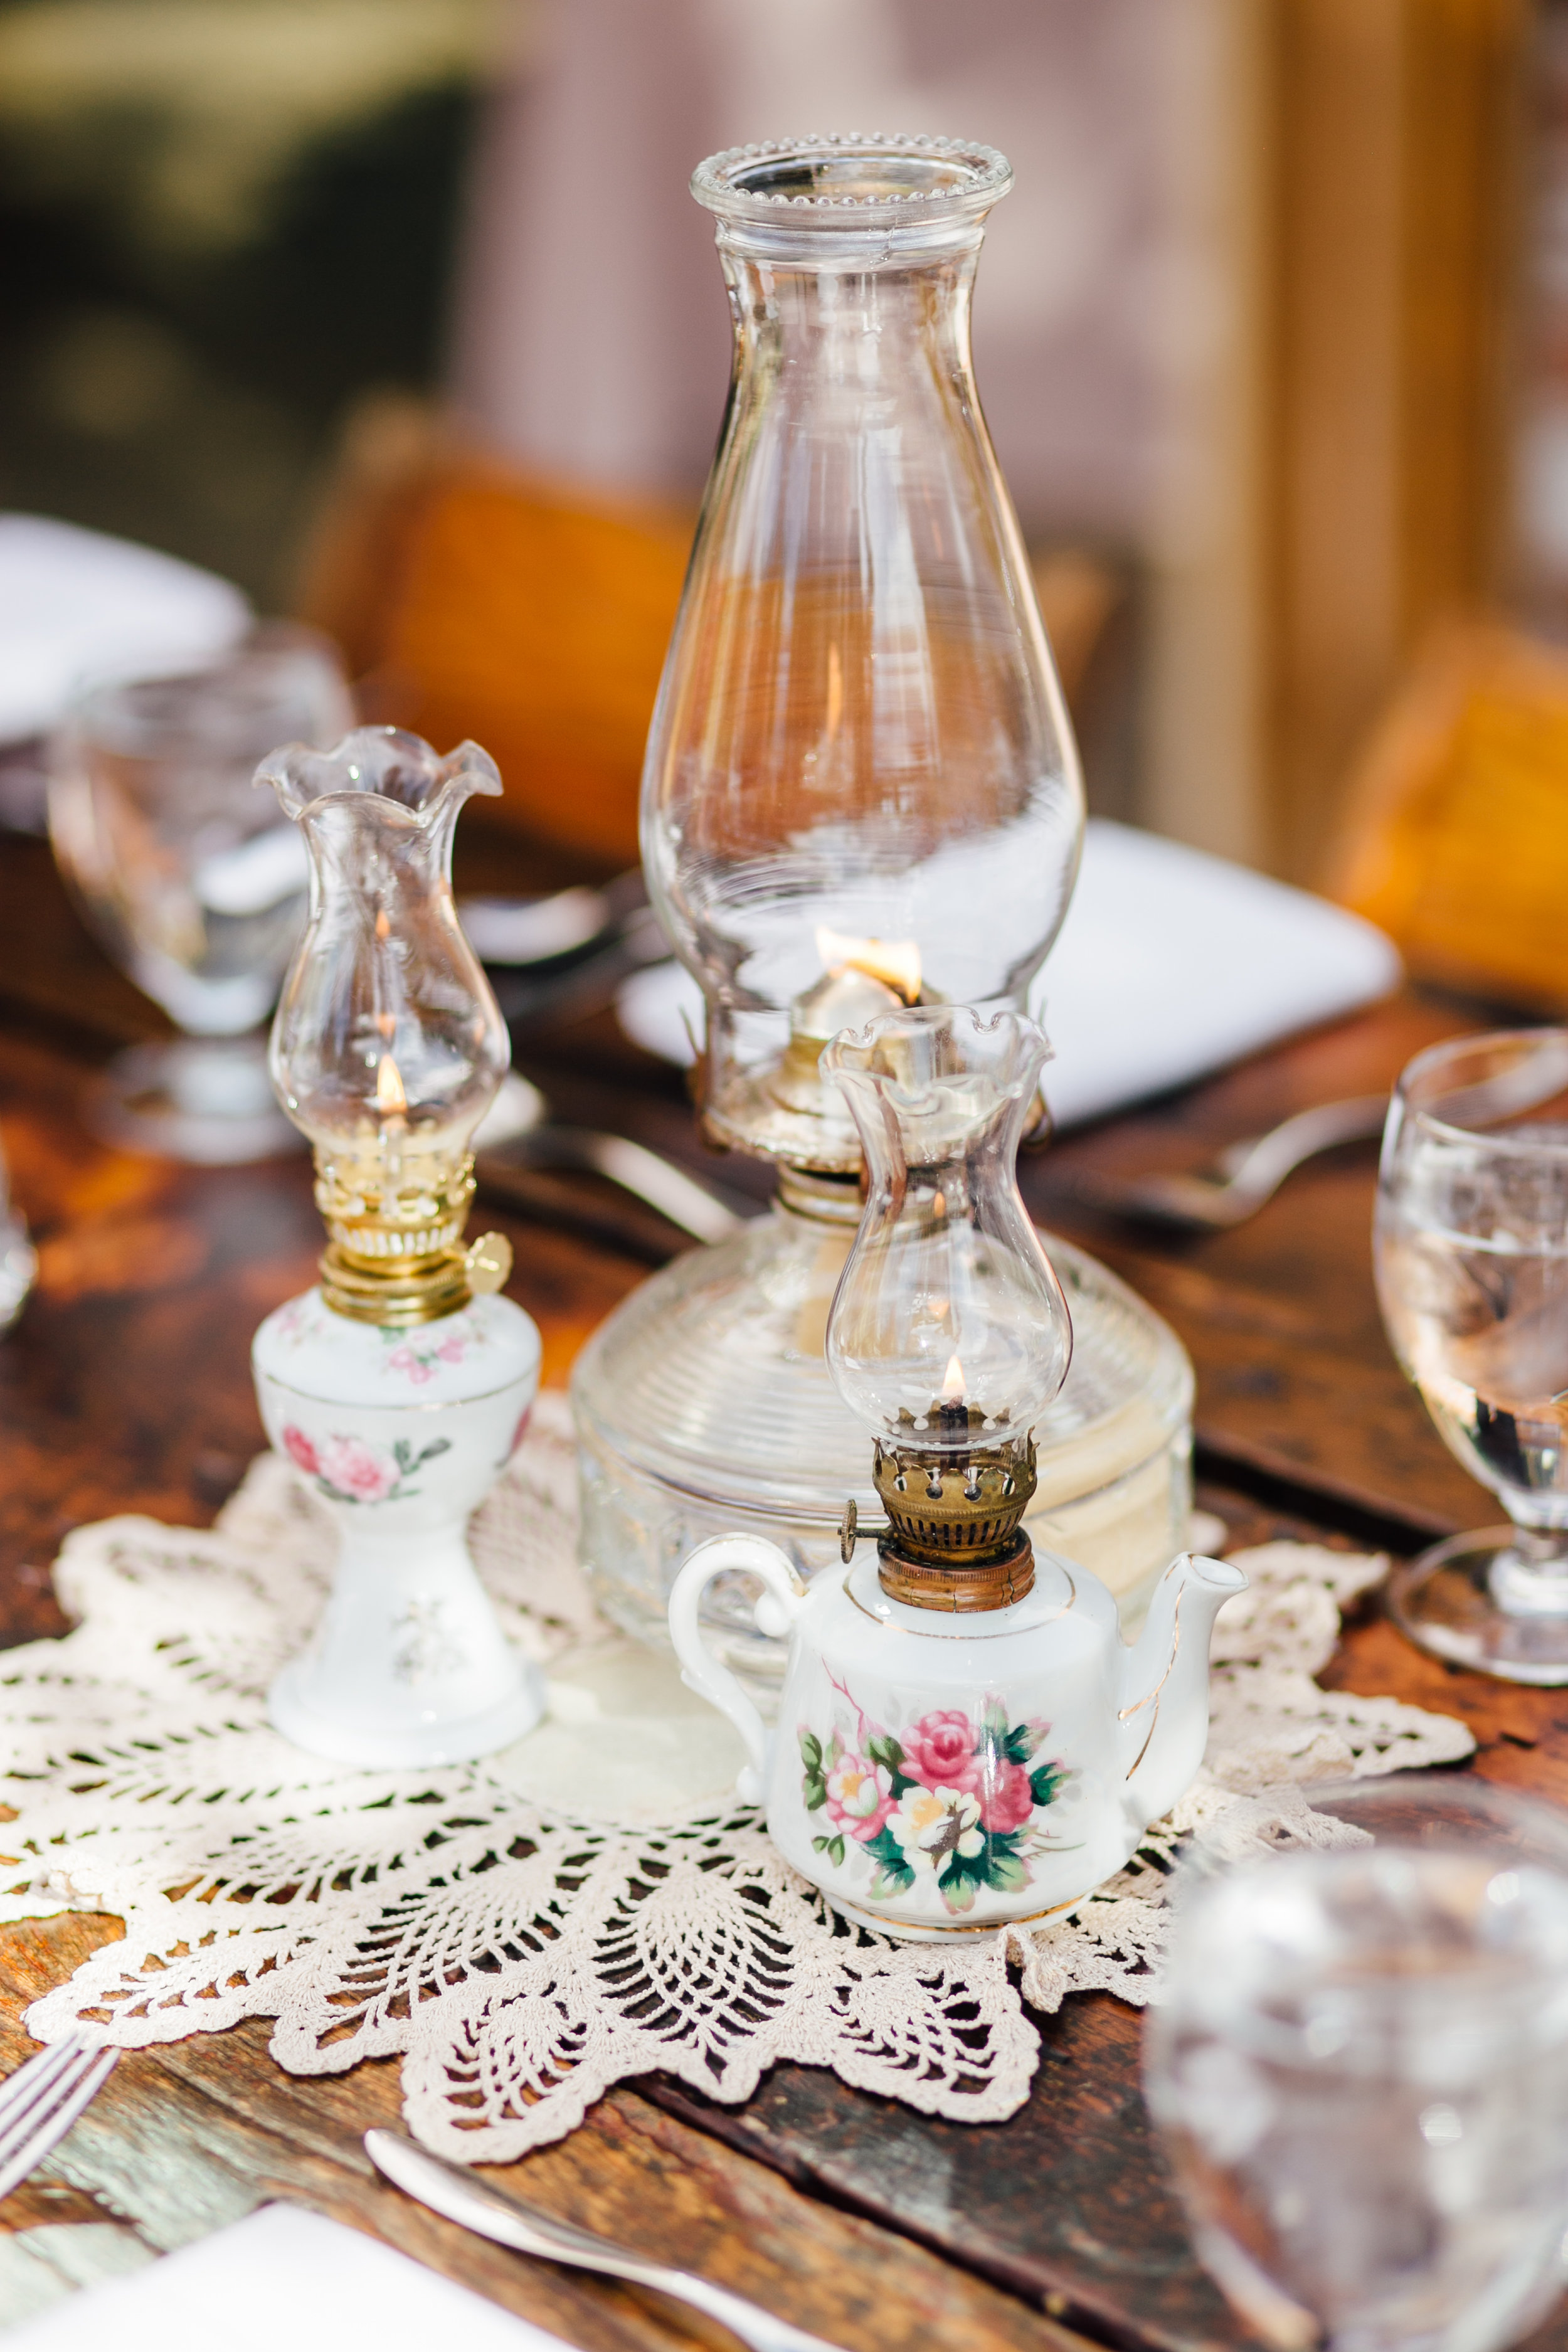 Oil Lamp and Doily Centerpiece Brookside Gardens Berthoud Colorado Wedding